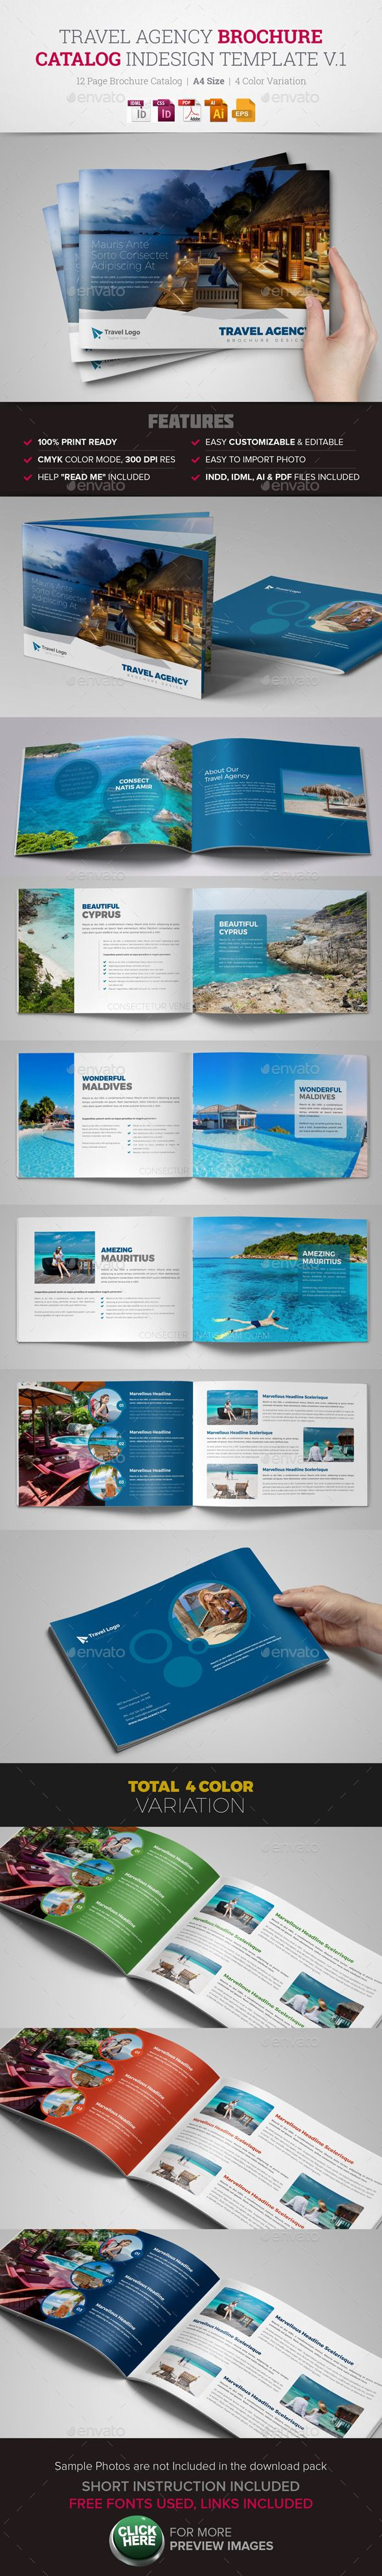 Travel Agency Brochure Catalog  EPS Template • Download ➝ https://graphicriver.net/item/travel-agency-brochure-catalog/6925114?ref=pxcr